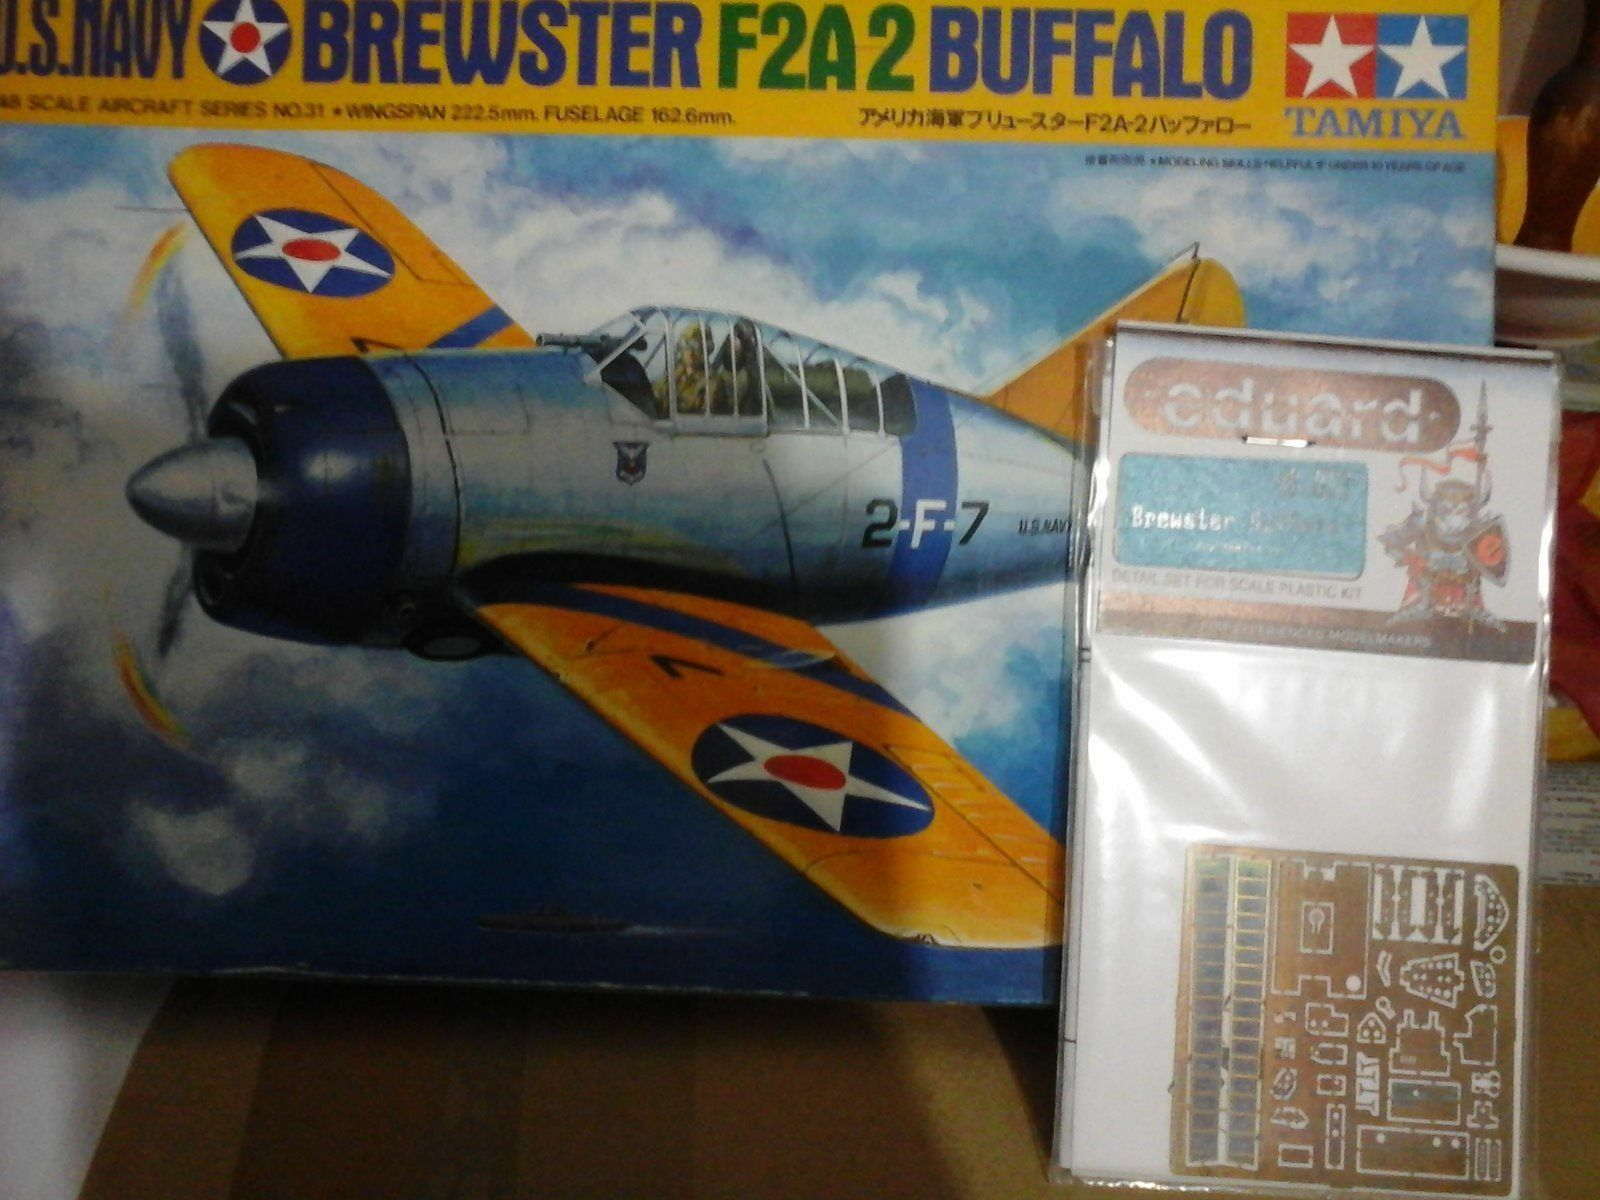 BREWSTER F2A2 BUFFALO US NAVY 1 48 SCALE TAMIYA MODEL+PHOTOETCHED PARTS